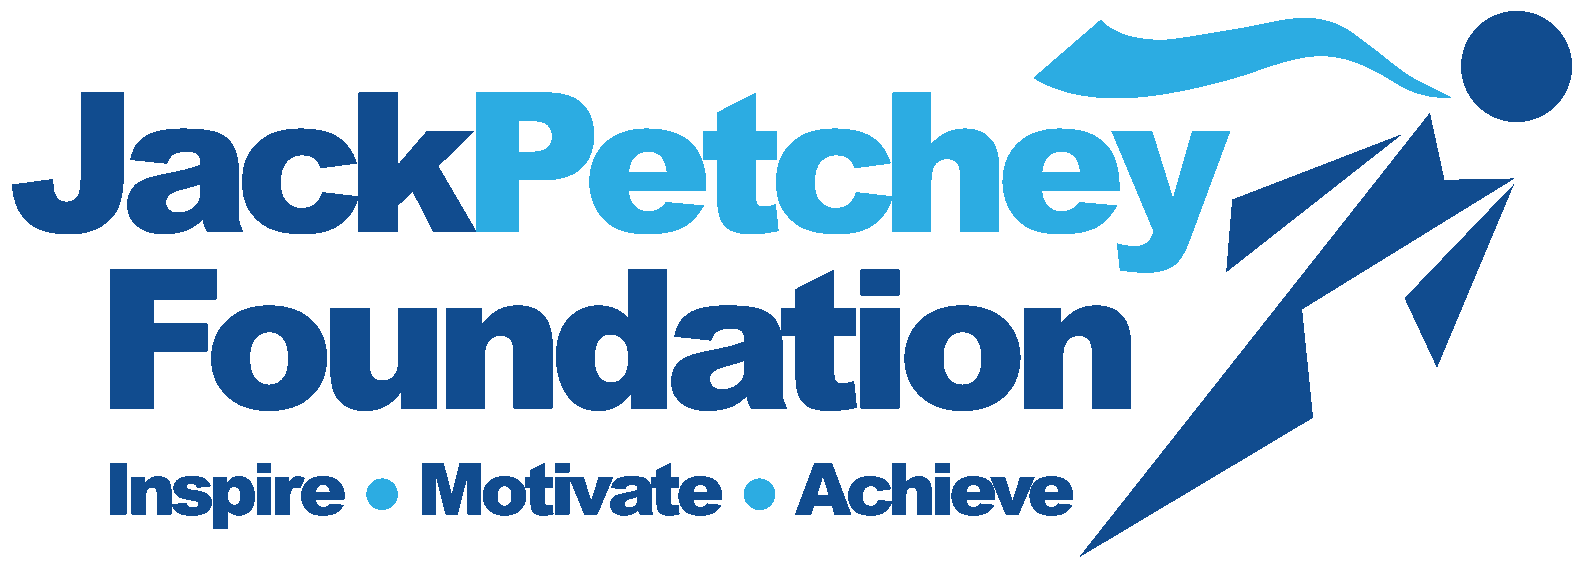 Jack Petchey Foundation Grant logo with Inspire Motivate Achieve for PMGY Gap Year Volunteer Abroad Programs